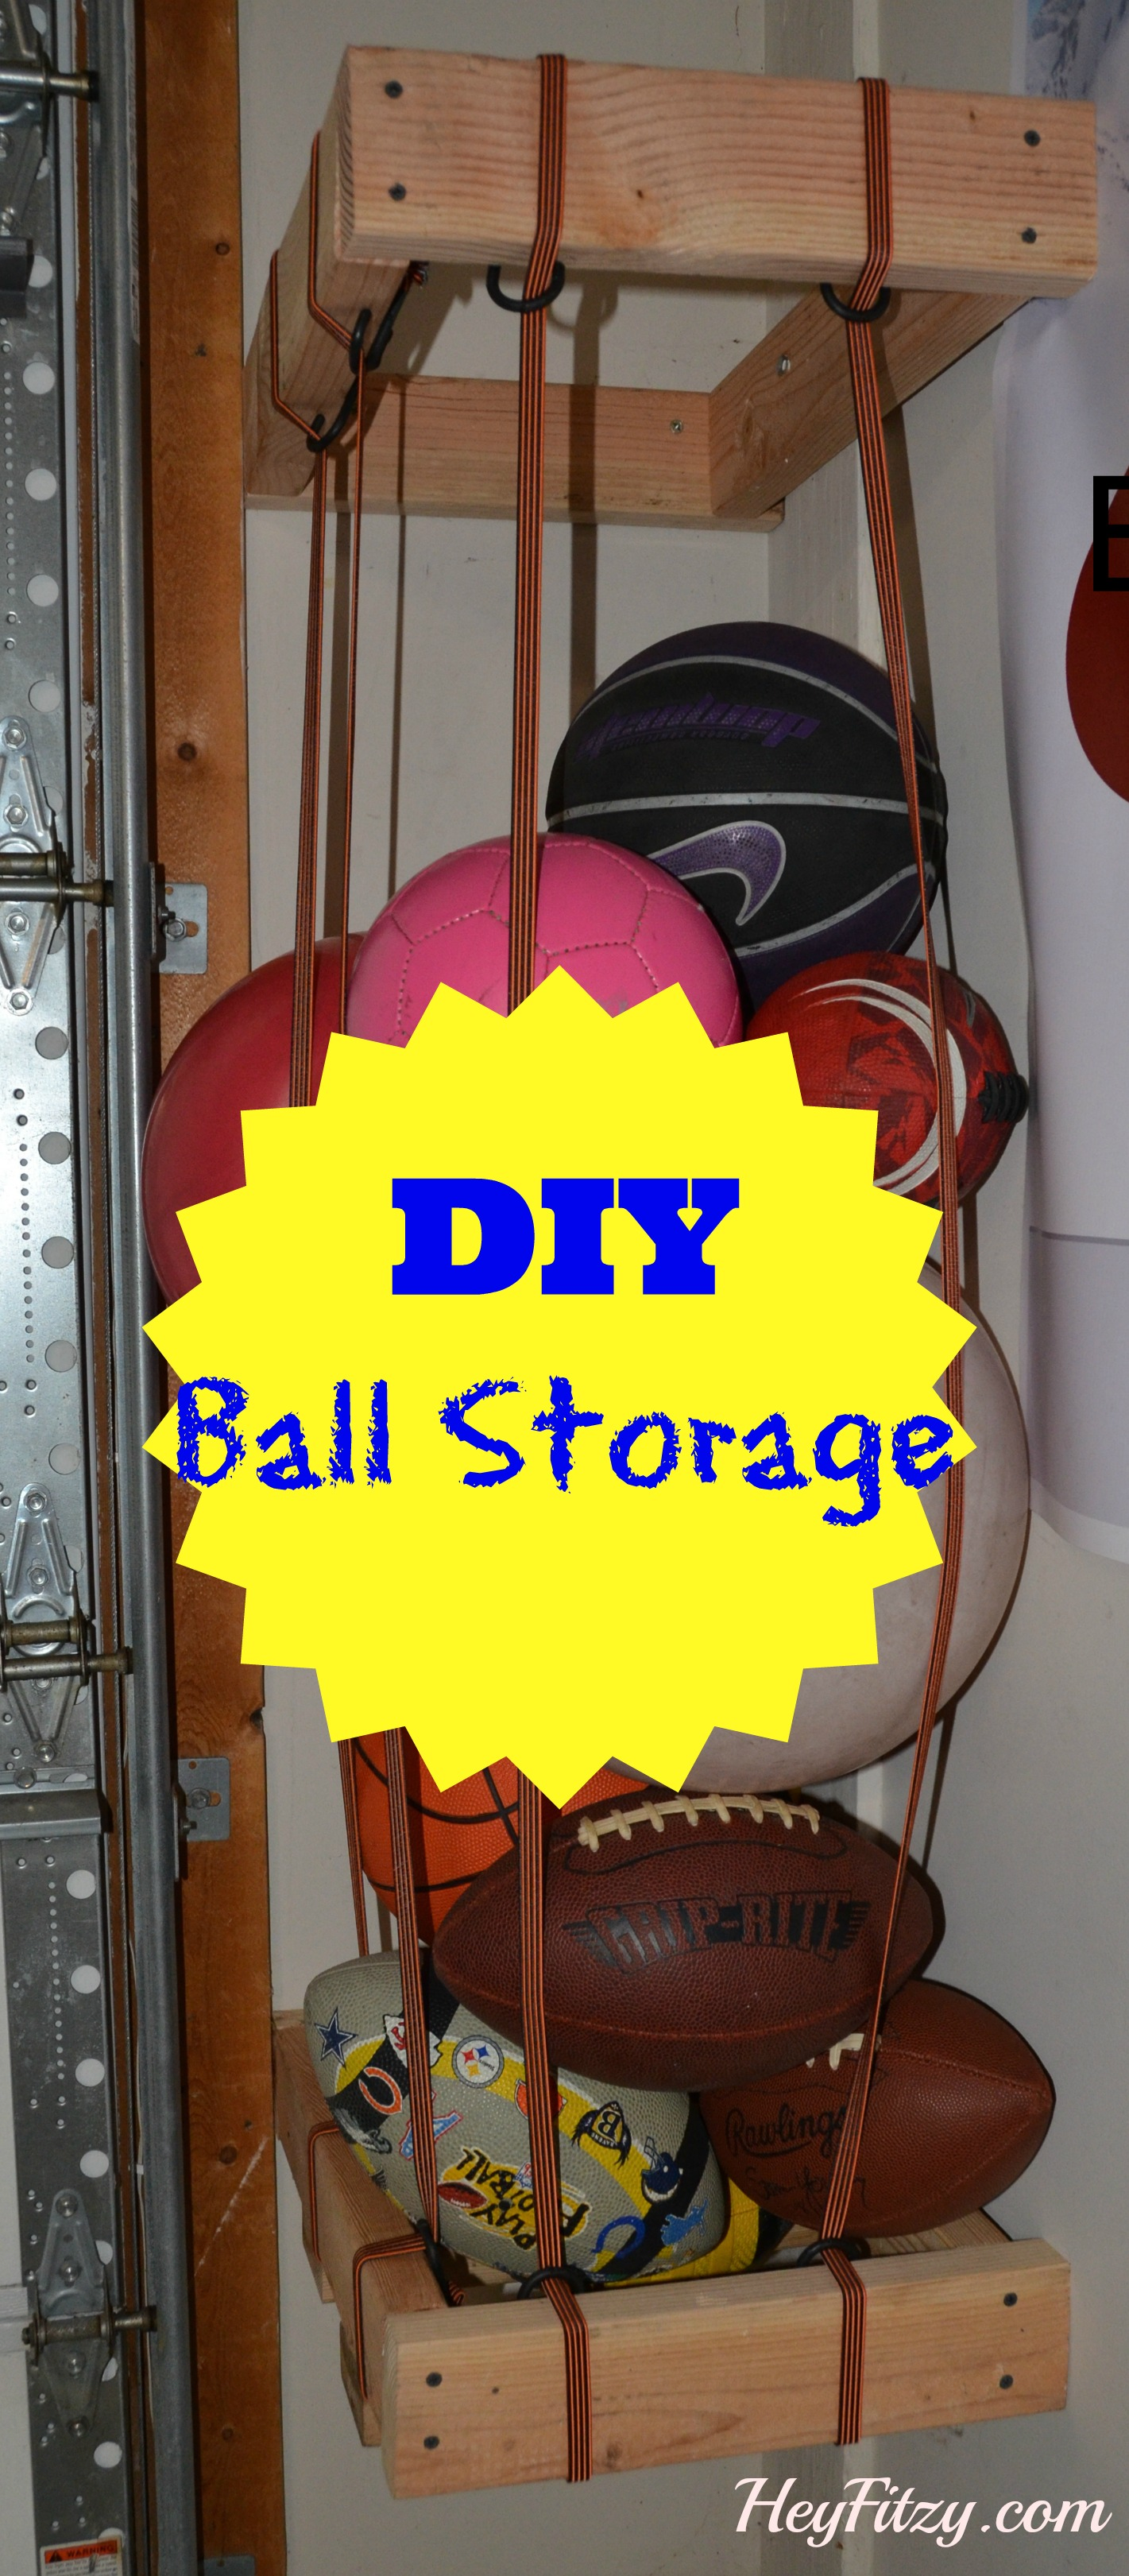 storage amazon pin garage caddy com gawuxxblth whirlpool garageworks improvement home gladiator ball